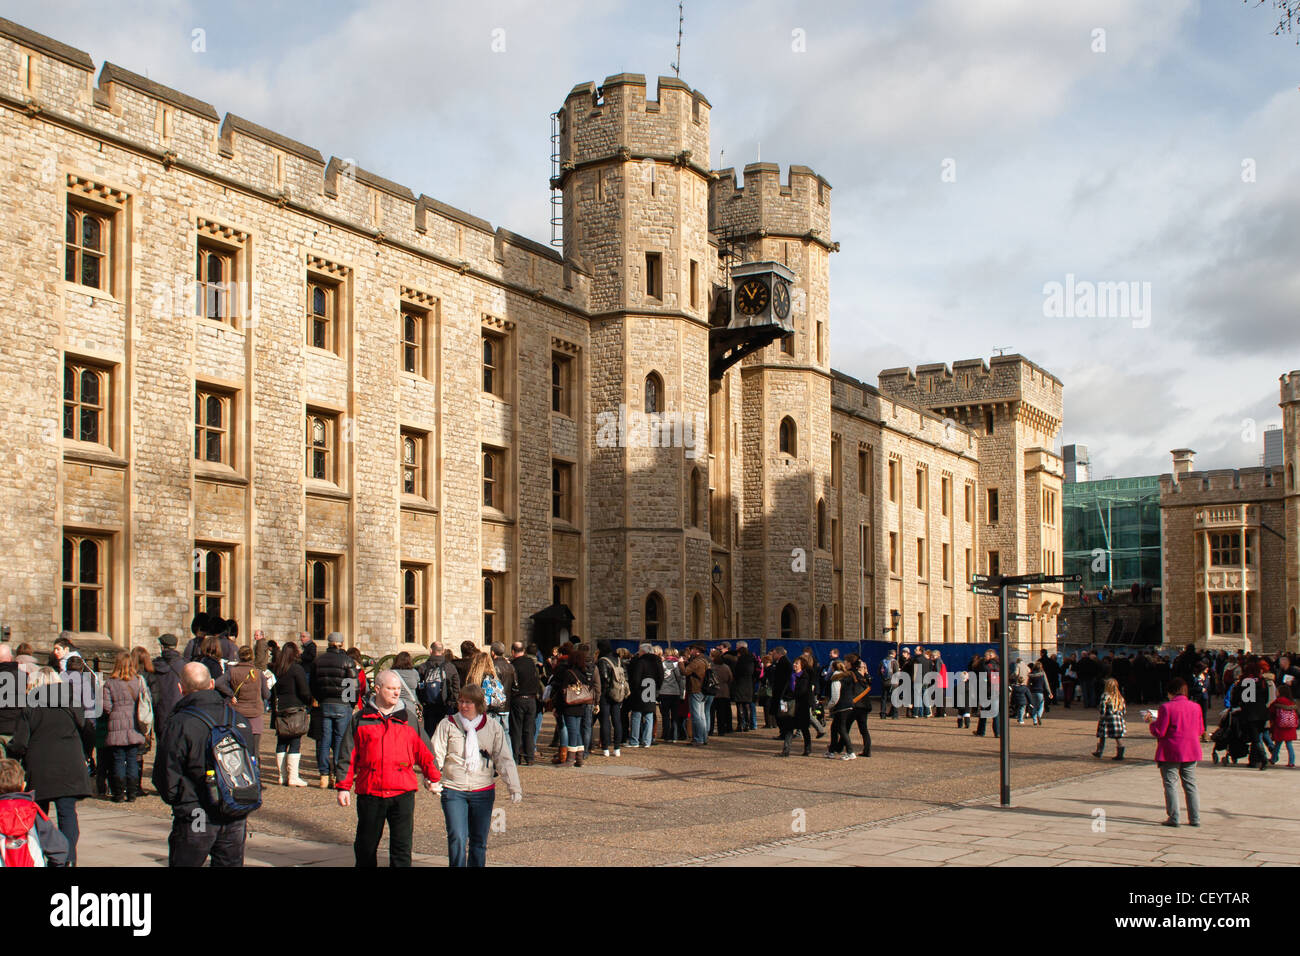 People queing to see the Crown Jewels outside the Jewel House in the Tower of London Stock Photo